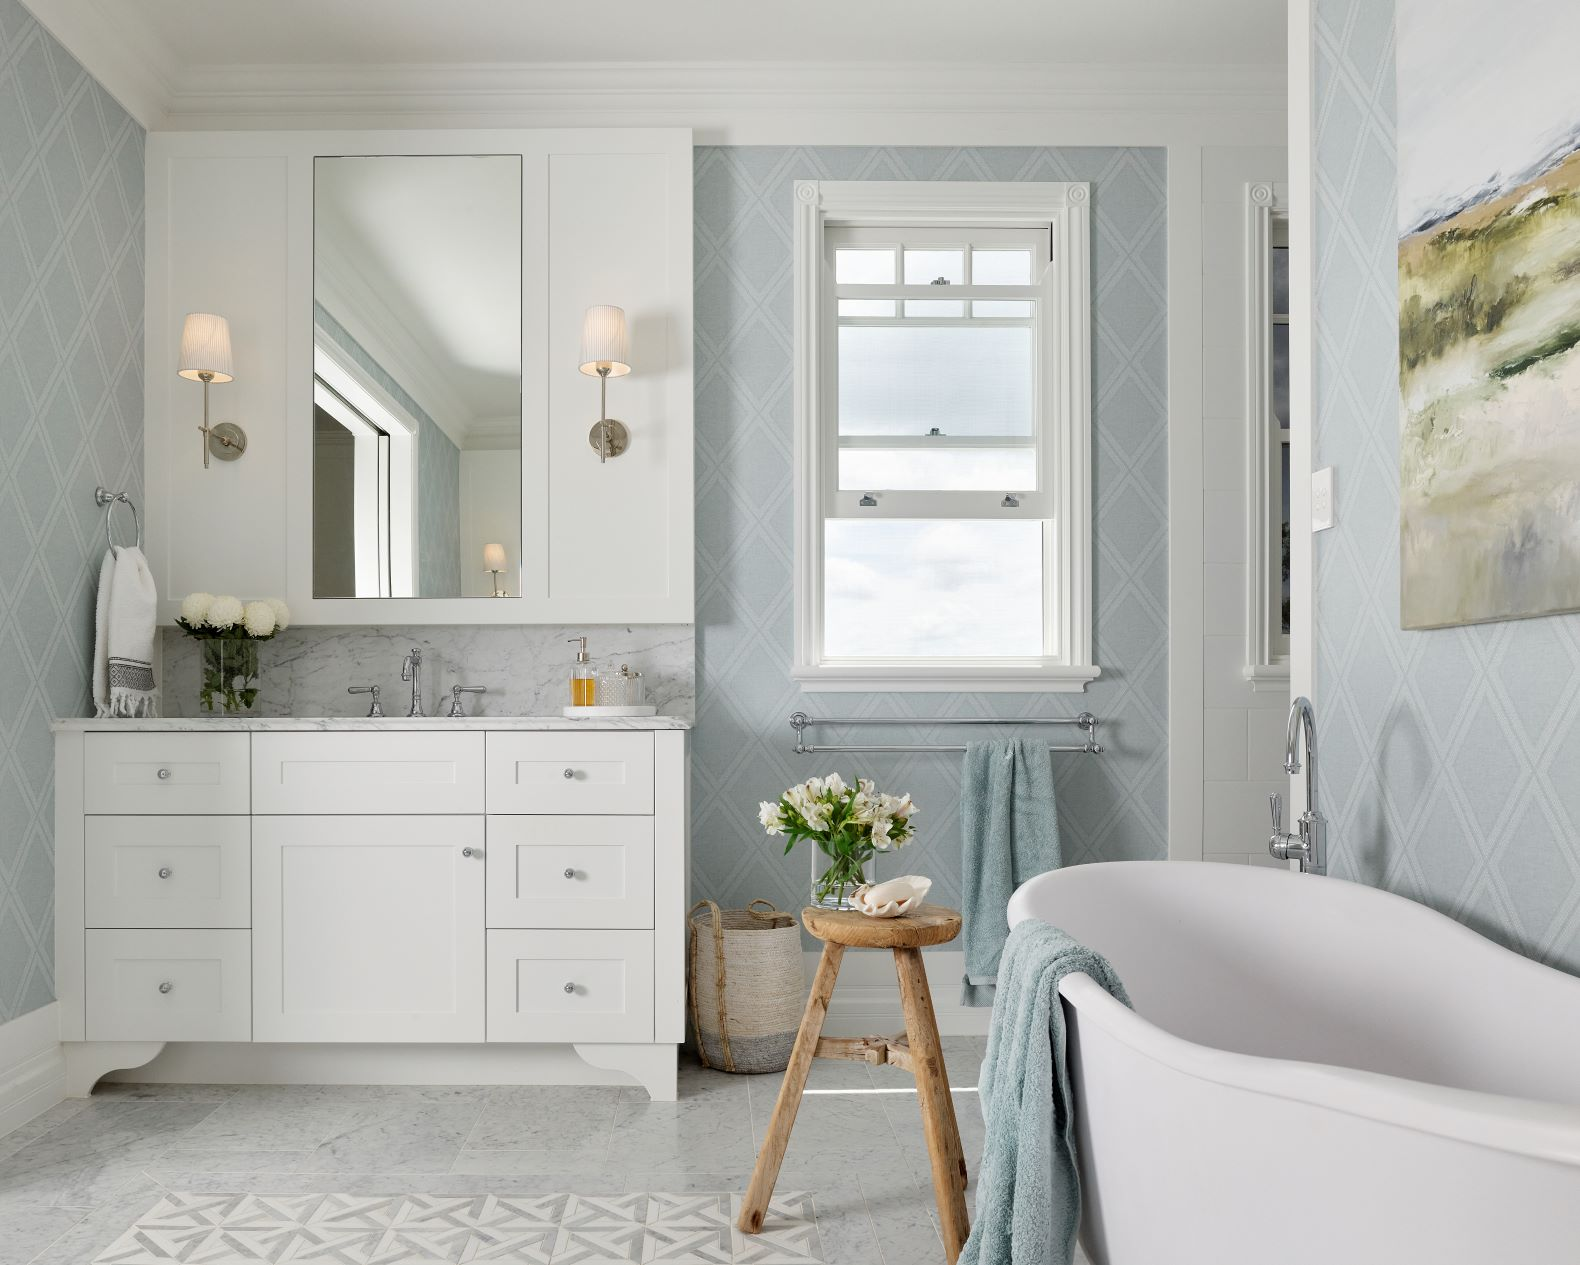 Bathoroom renovation at the Navy hoise featured in House and Garden Magazine